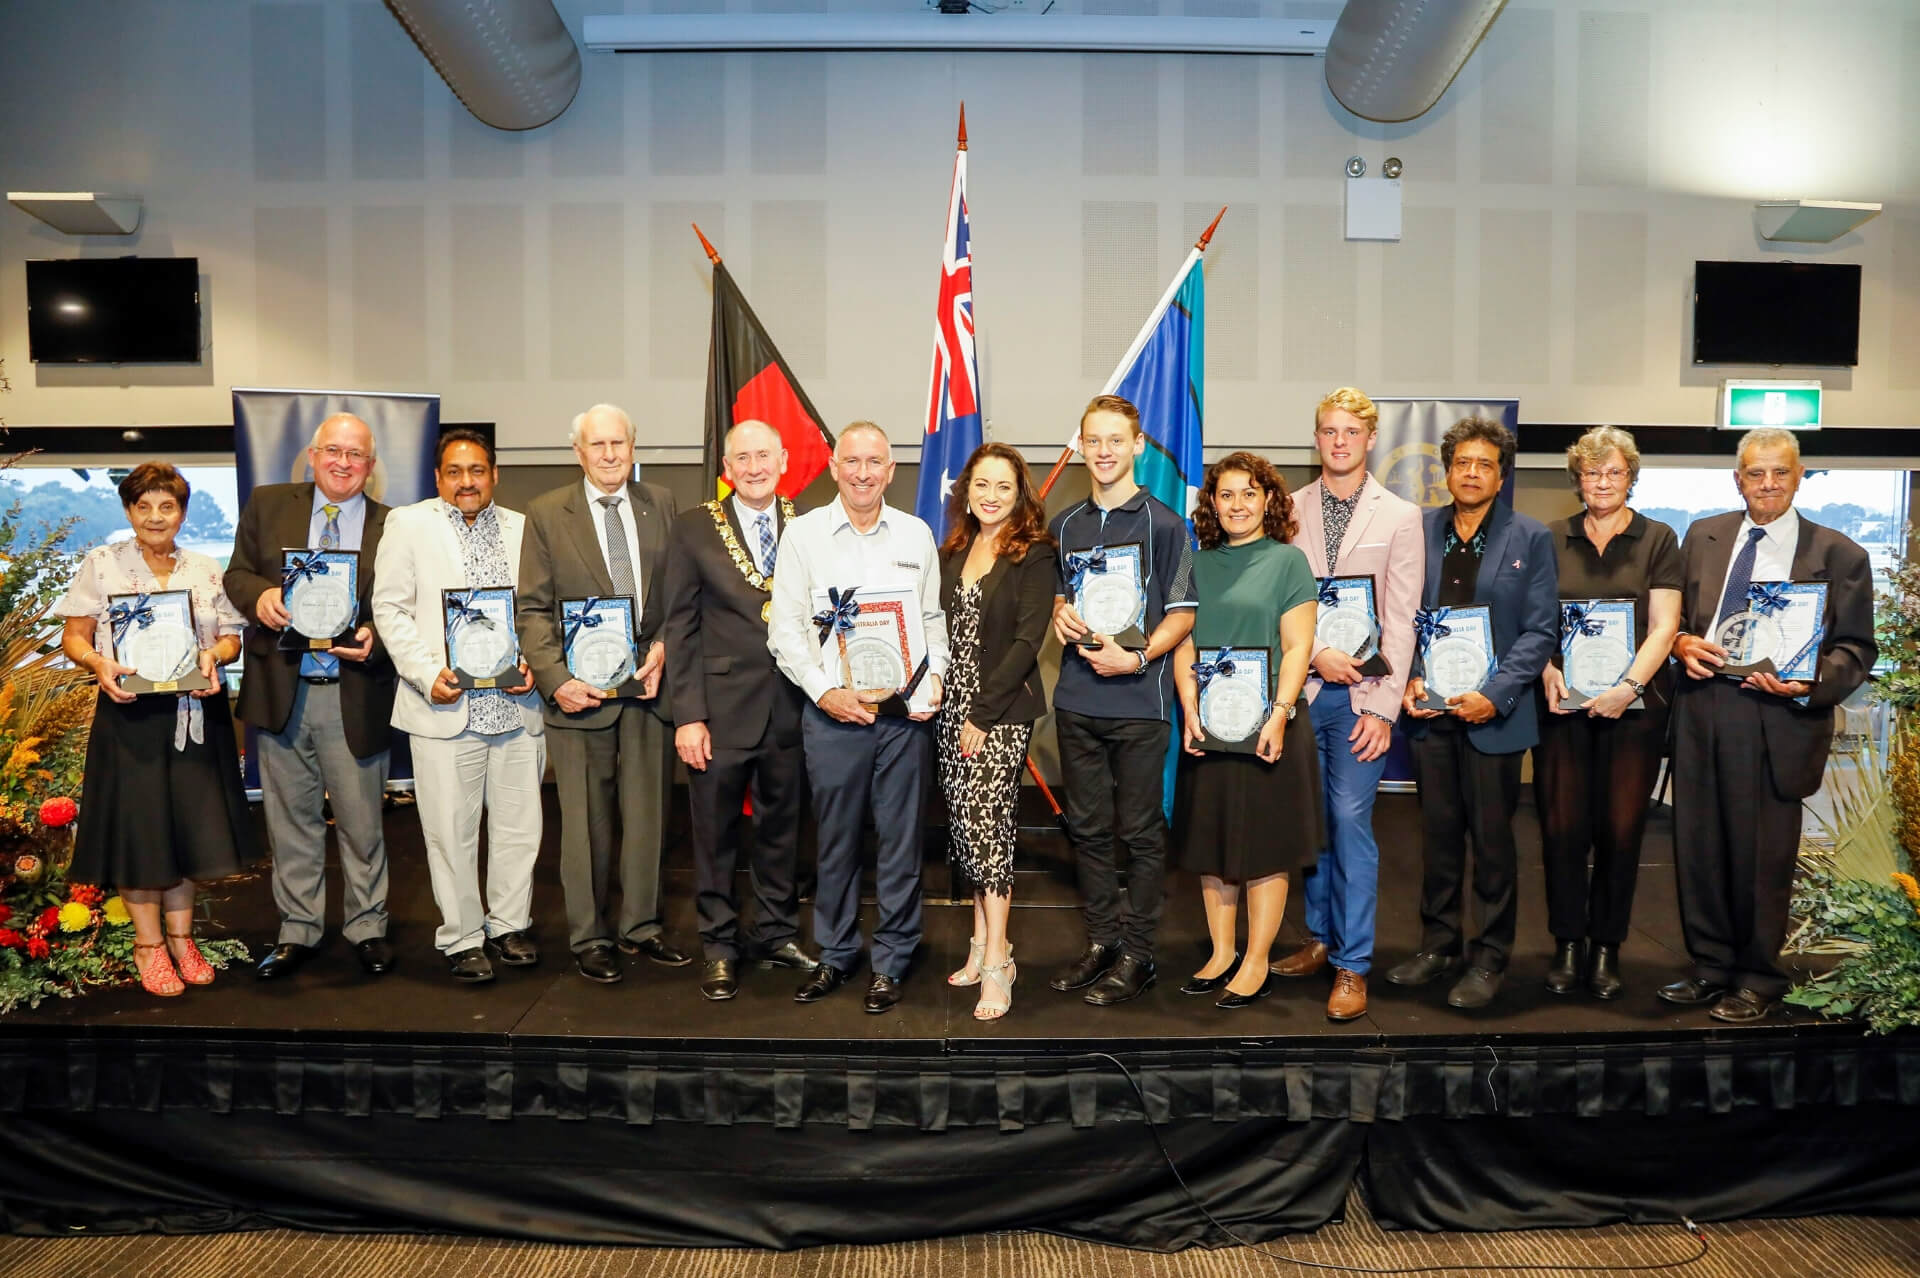 City of Parramatta Lord Mayor Cr Bob Dwyer with the 2020 Australia Day Local Award recipients.